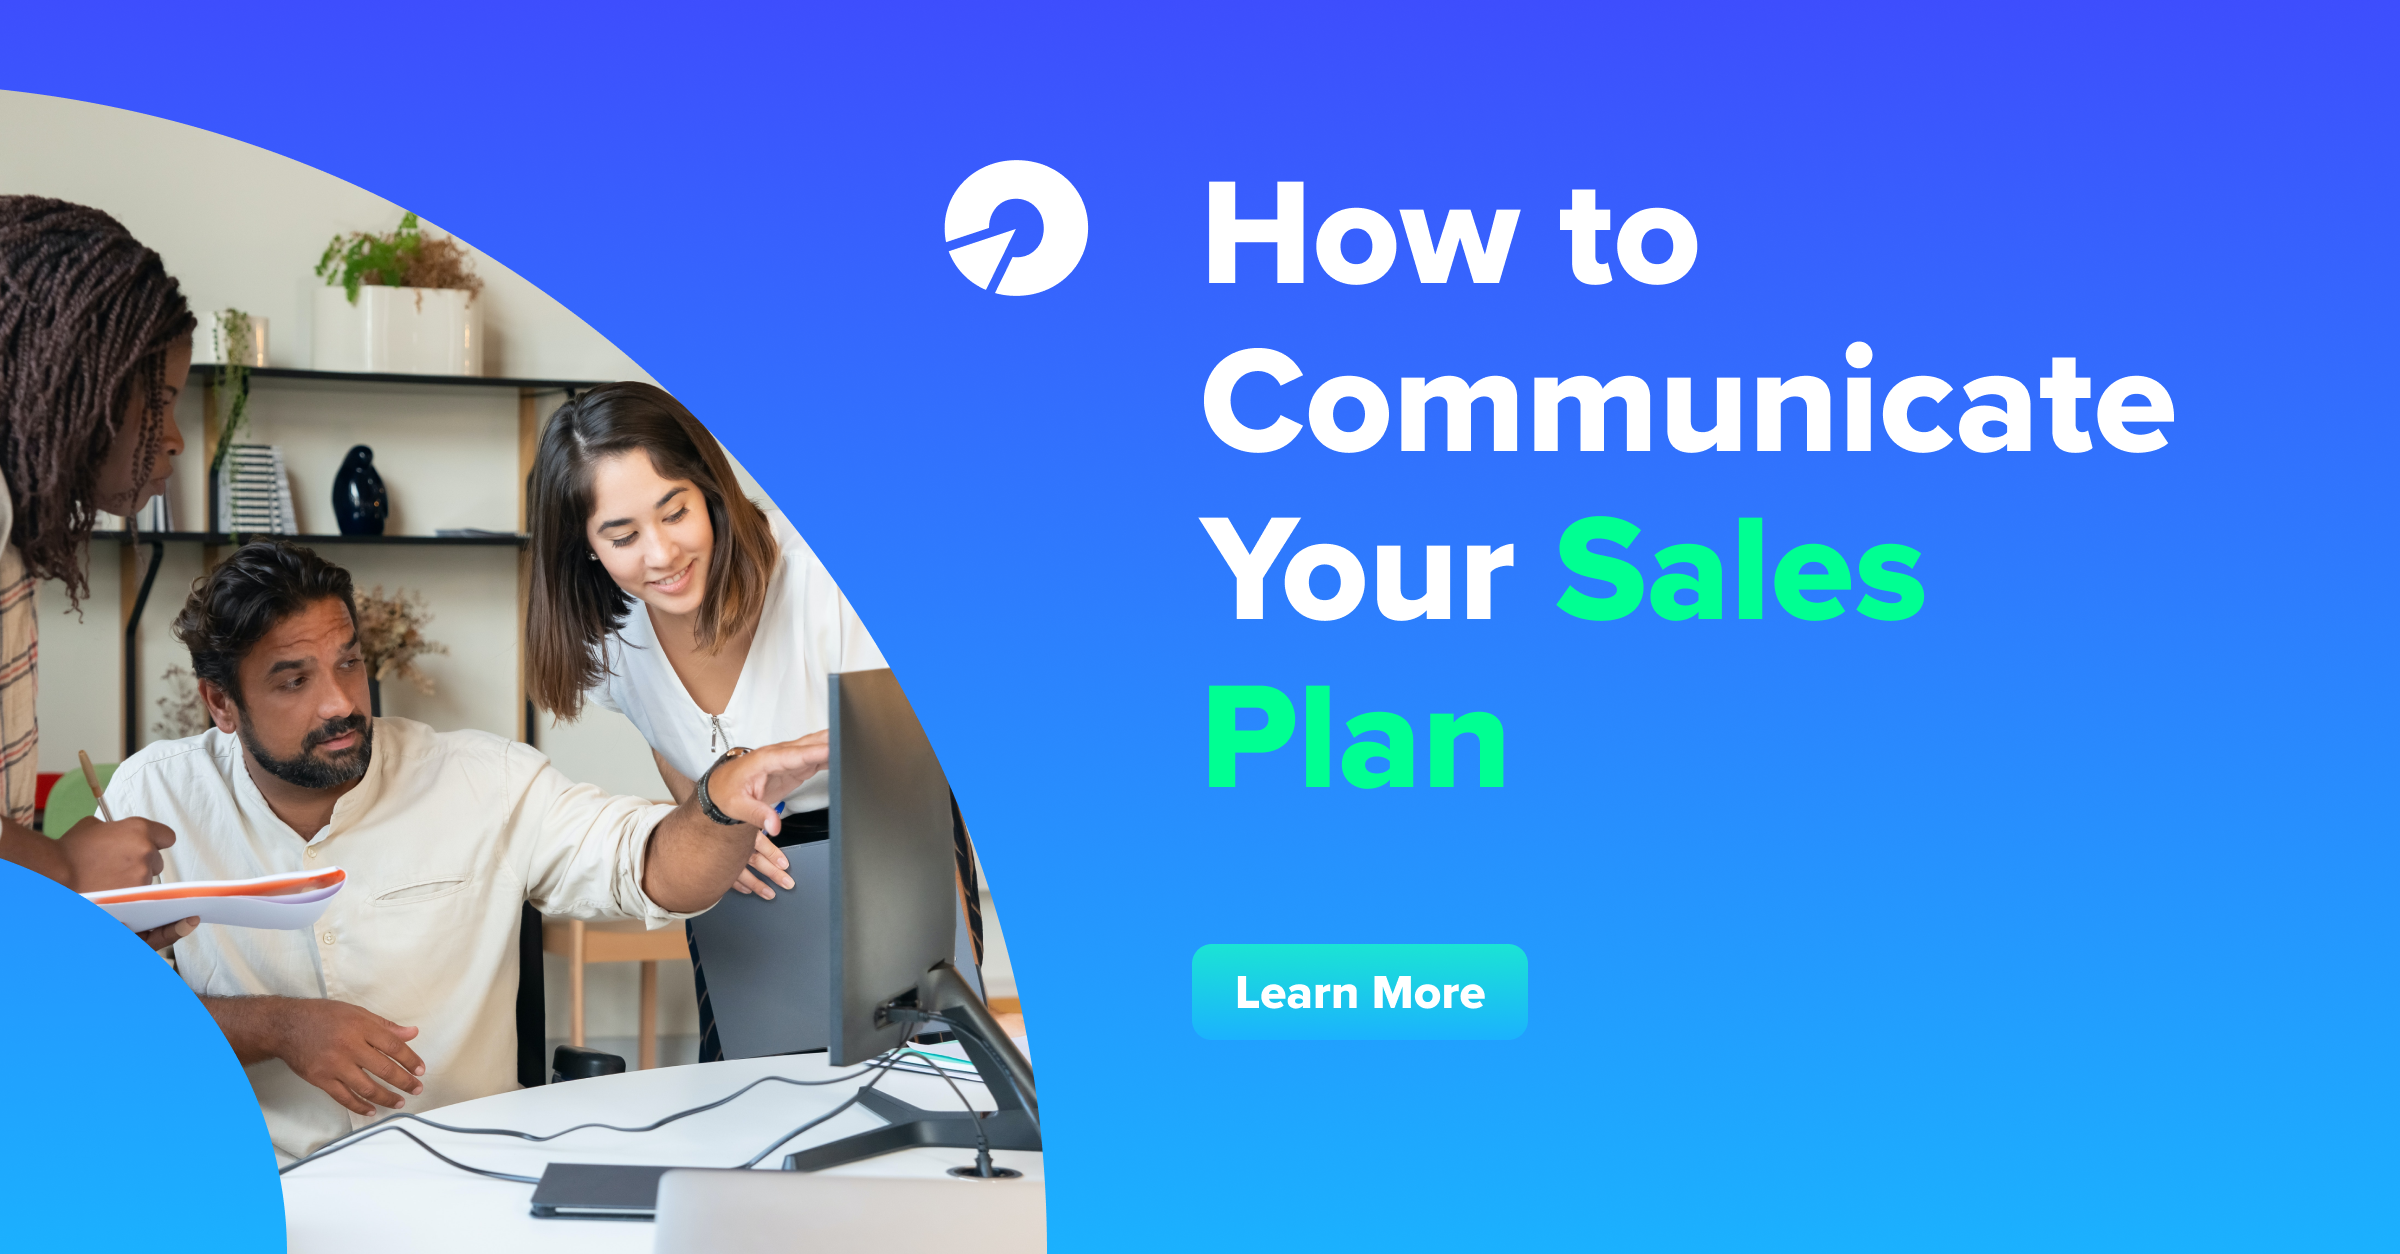 How to Communicate Your Sales Plan